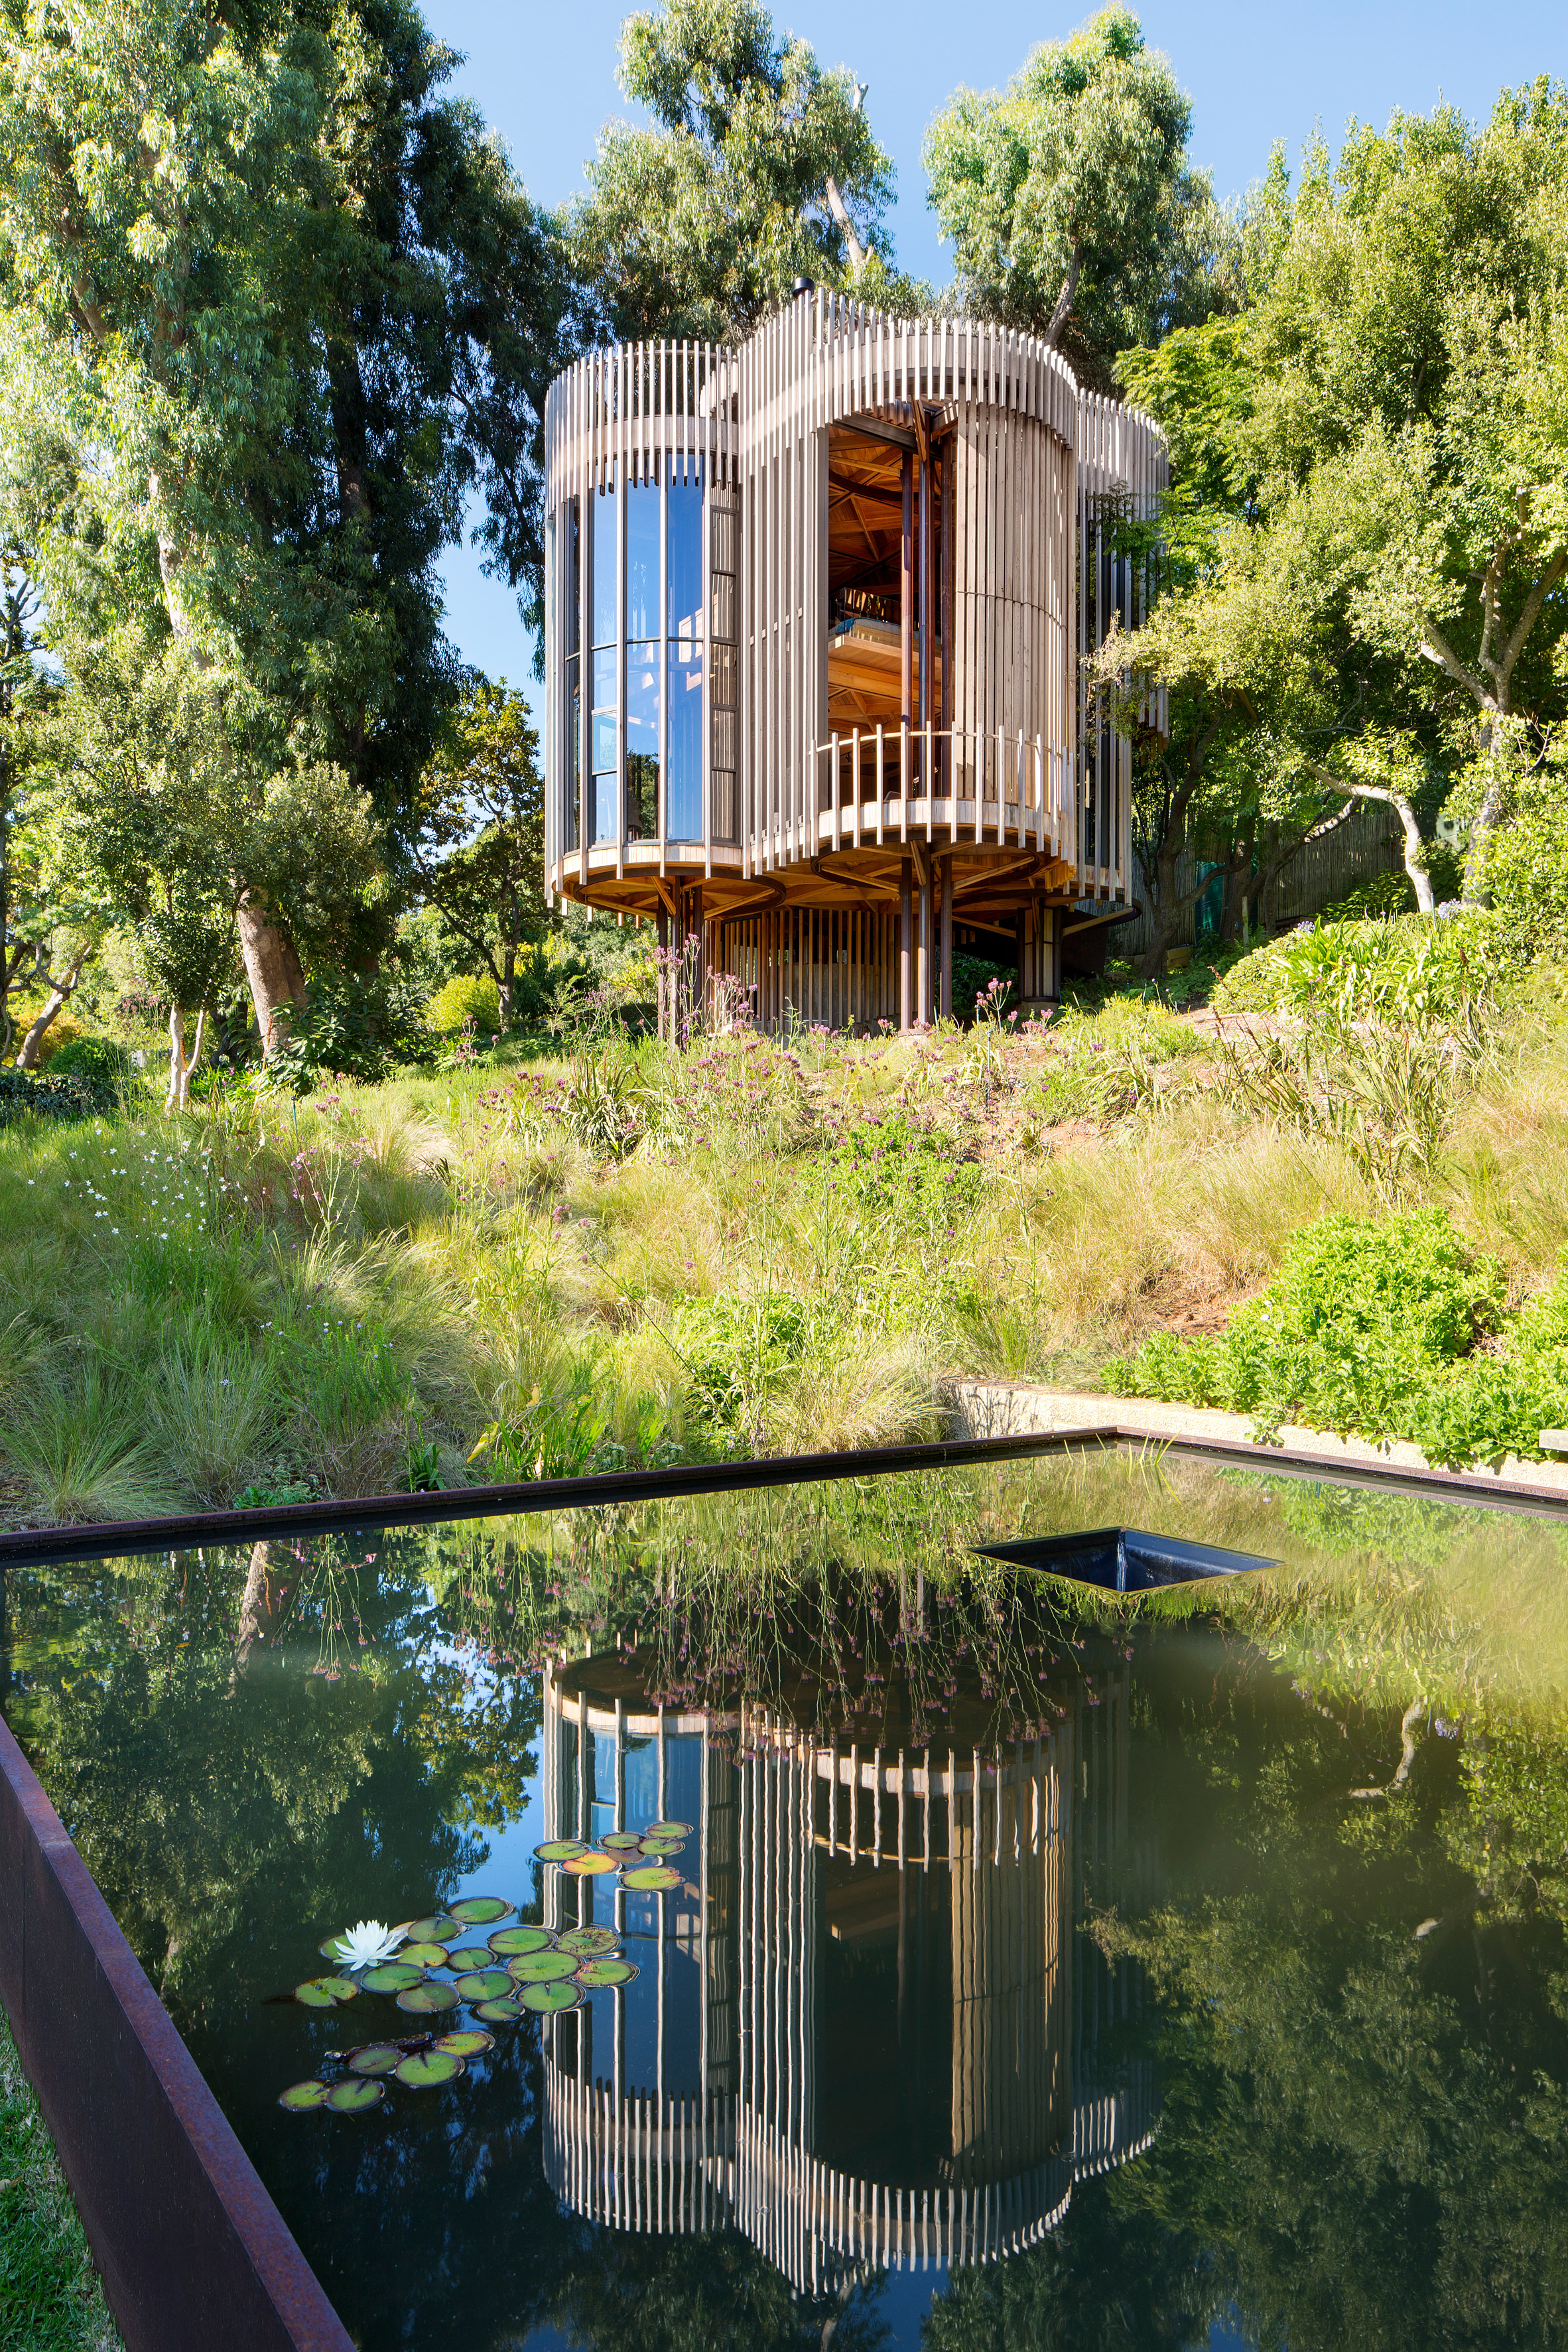 paarman-tree-house-by-mv-architecture-residential_dezeen_2364_col_12.jpg